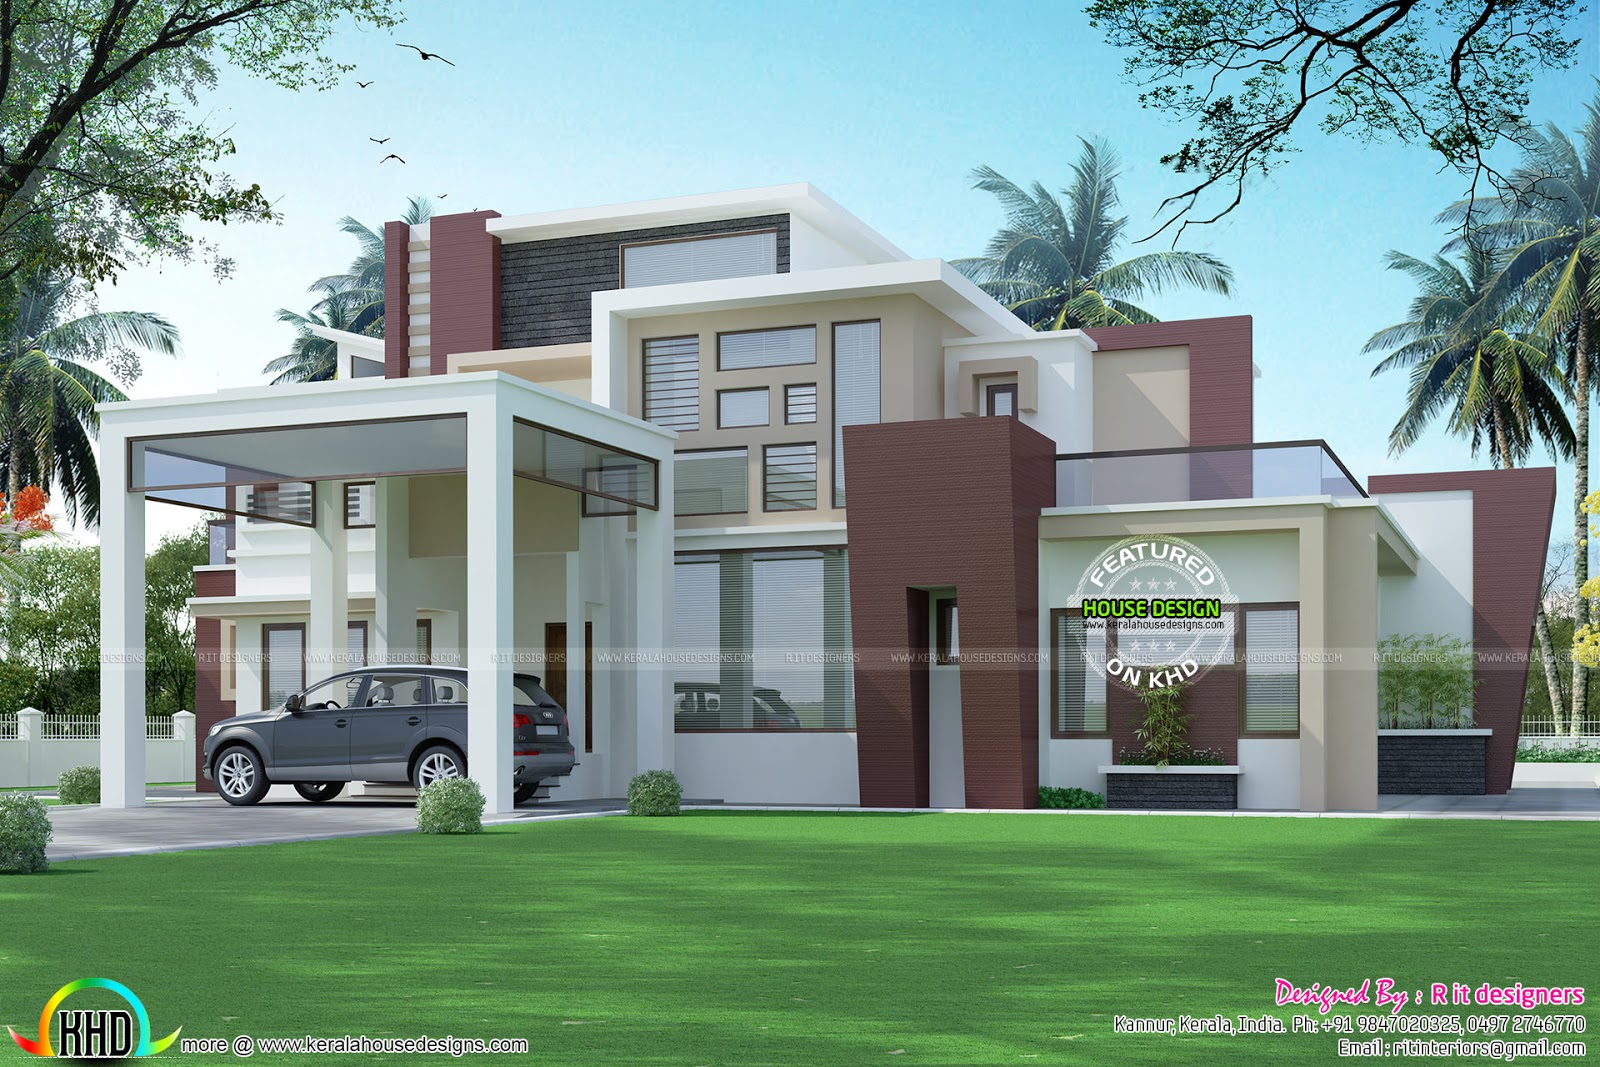 House Plans 4000 Sq Ft Or More 3 Bedrooms on modern japanese house design